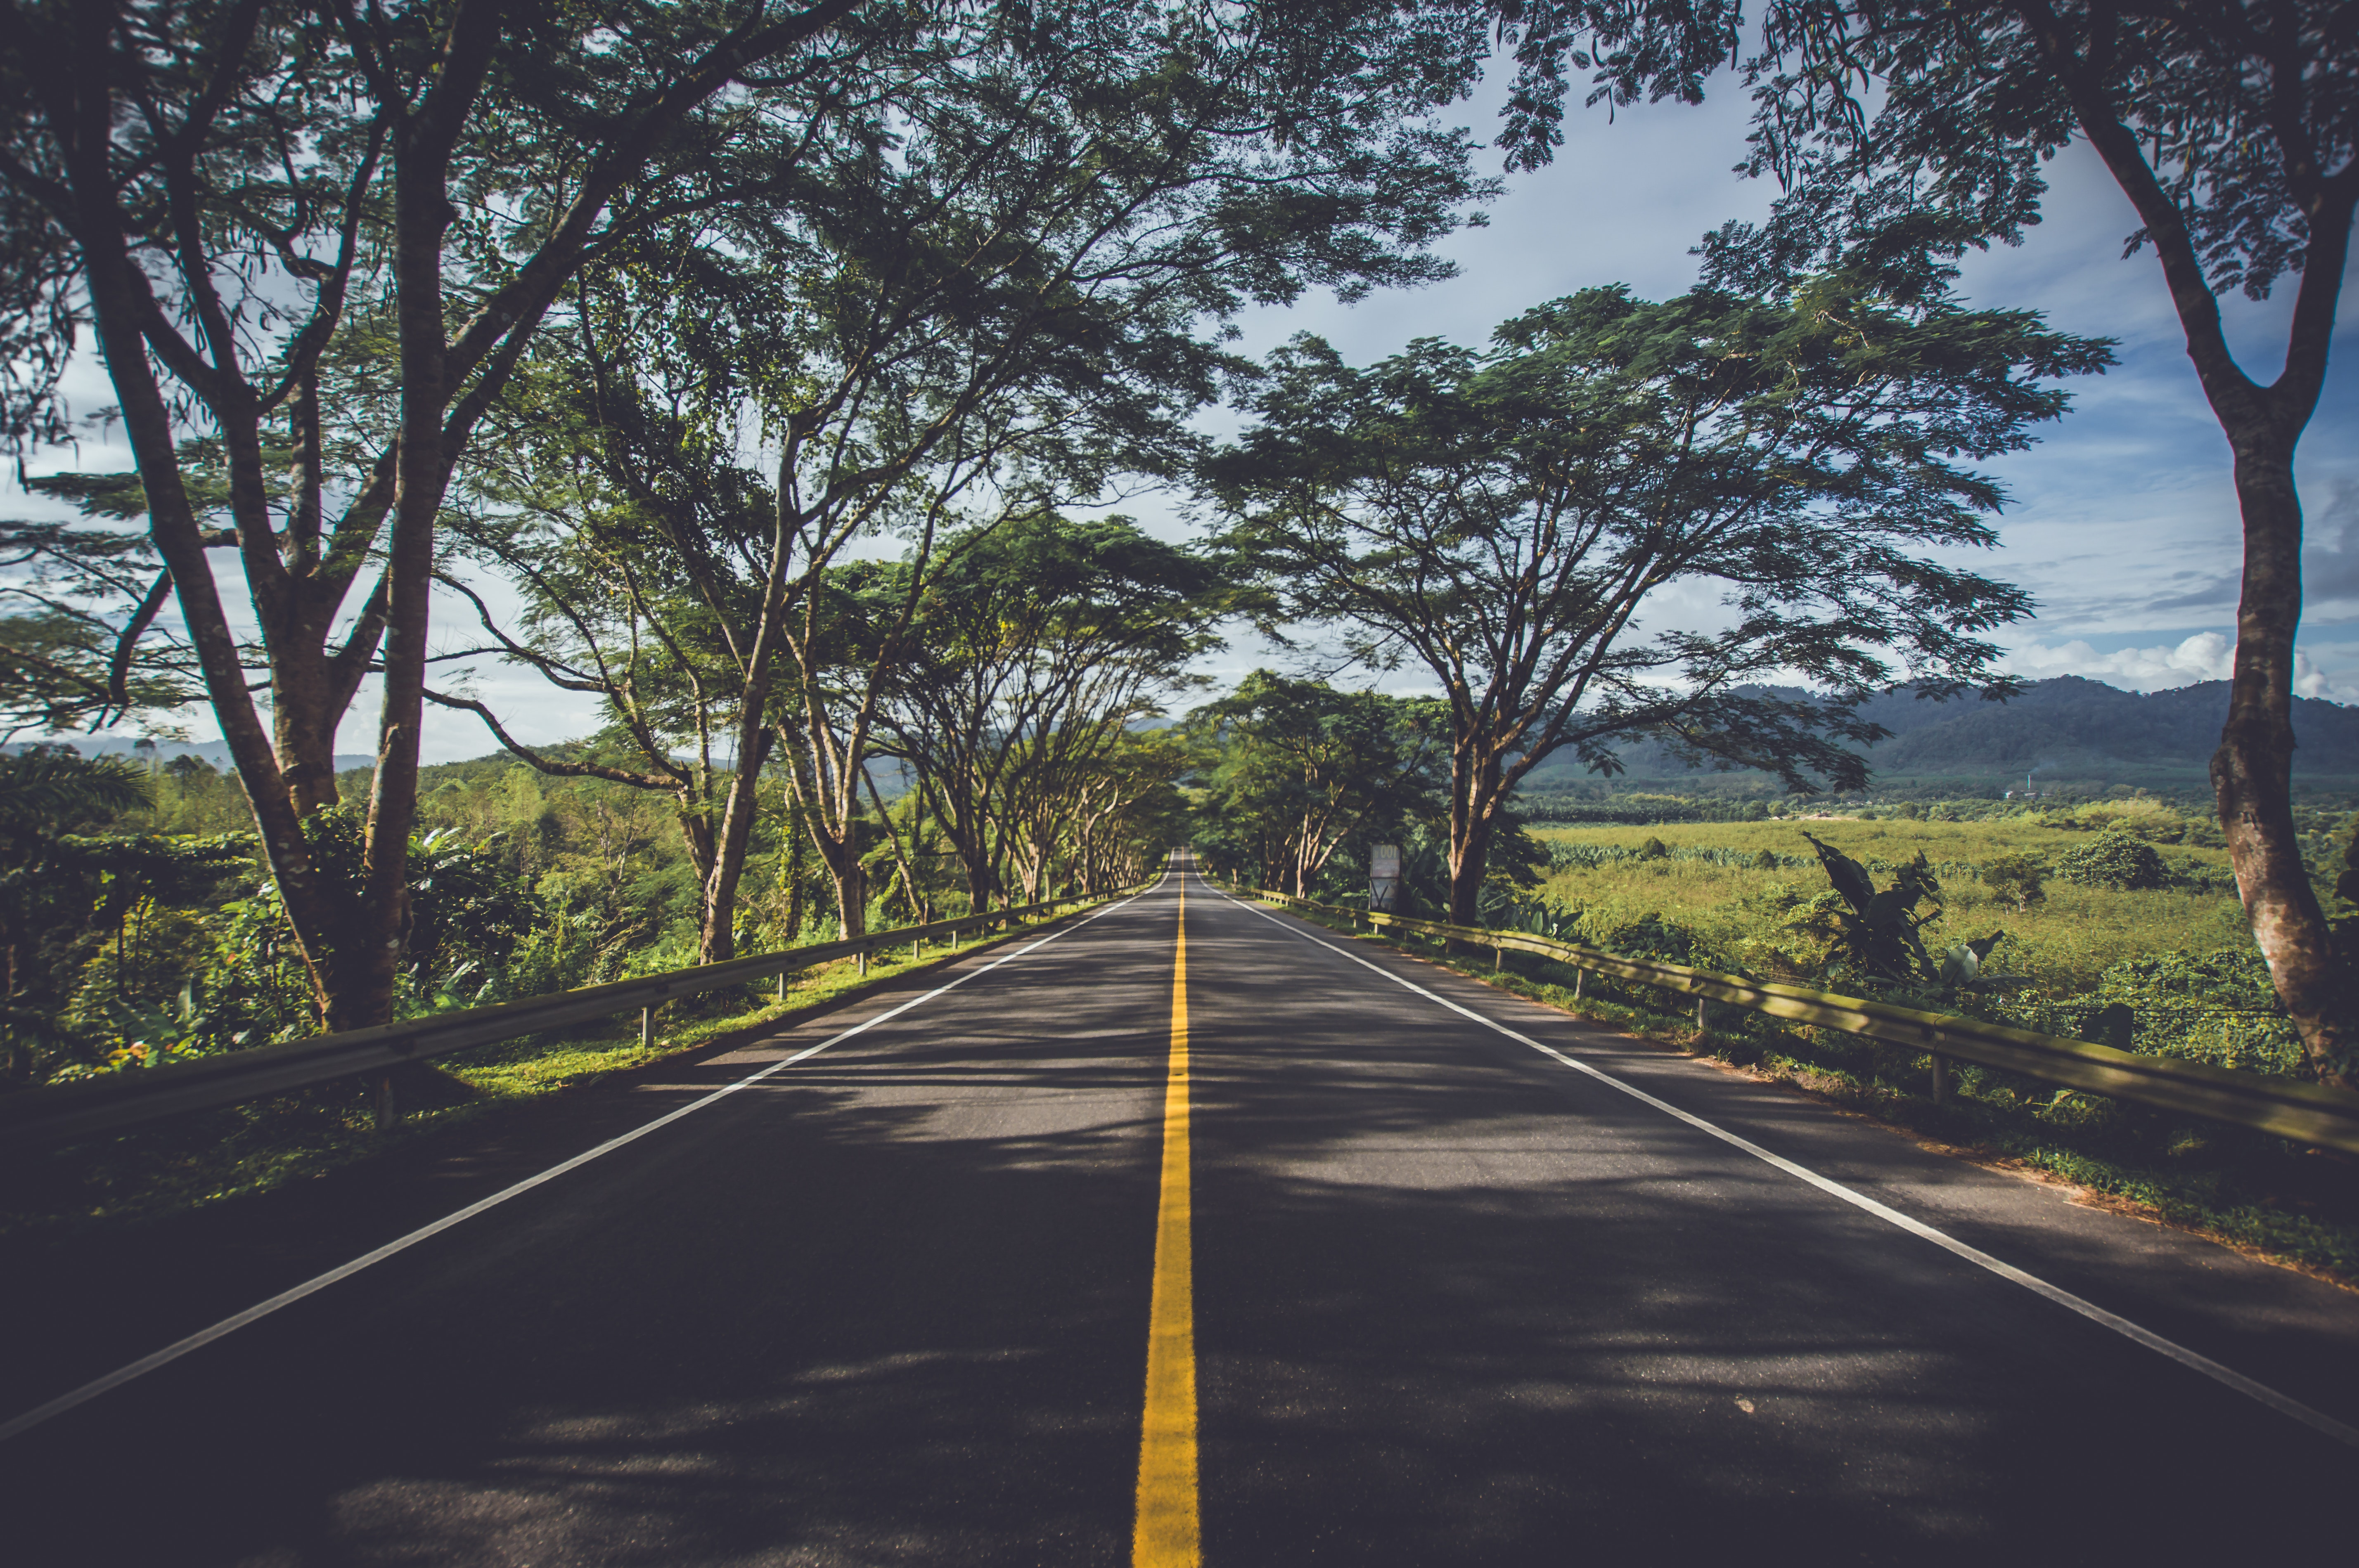 All Road Images Can Be Used Commercially Because They Are Licensed Under The Creative Commons Zero License Of Our Free Stock Photos